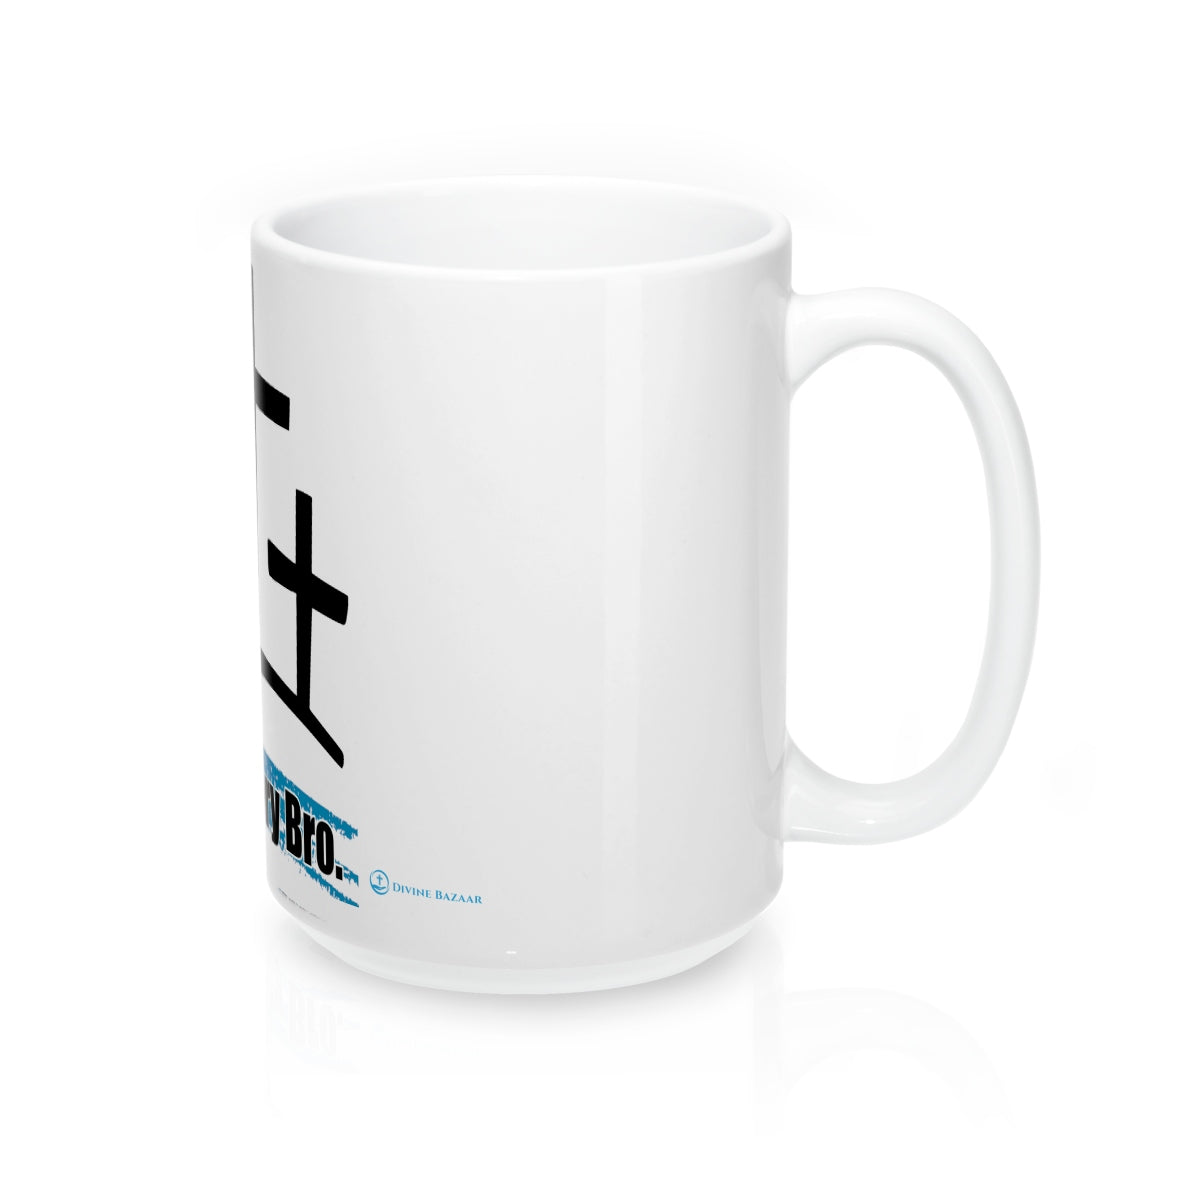 Mug 15oz - True Story Bro